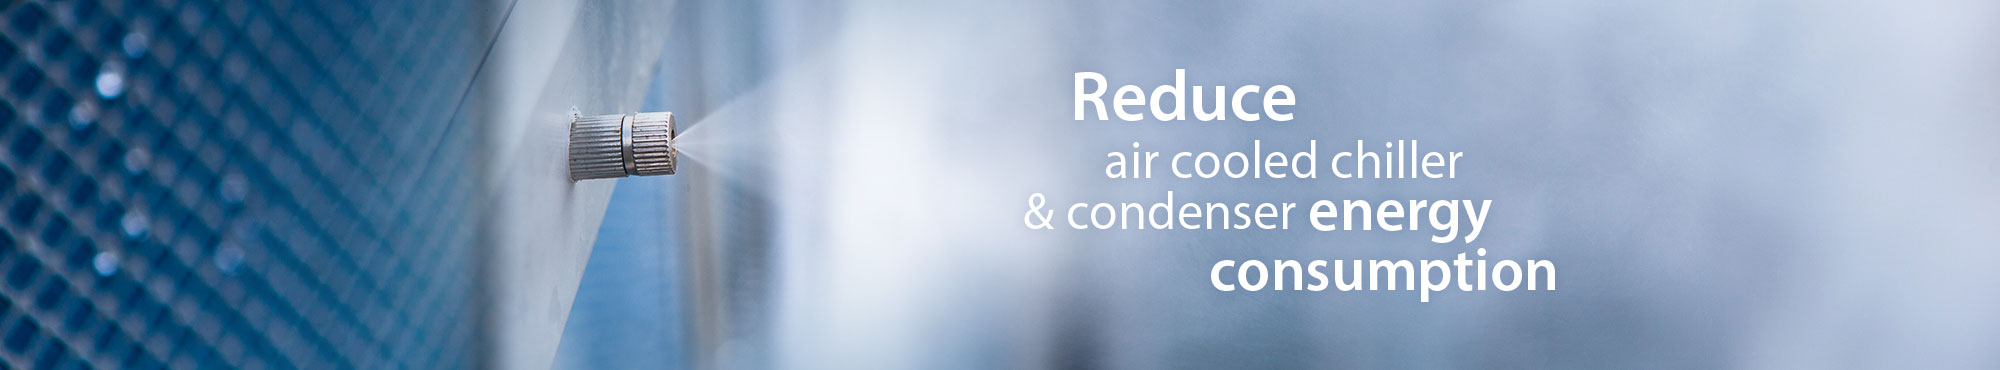 Save on Air Conditioning Costs with a Pre-Cooling Misting System